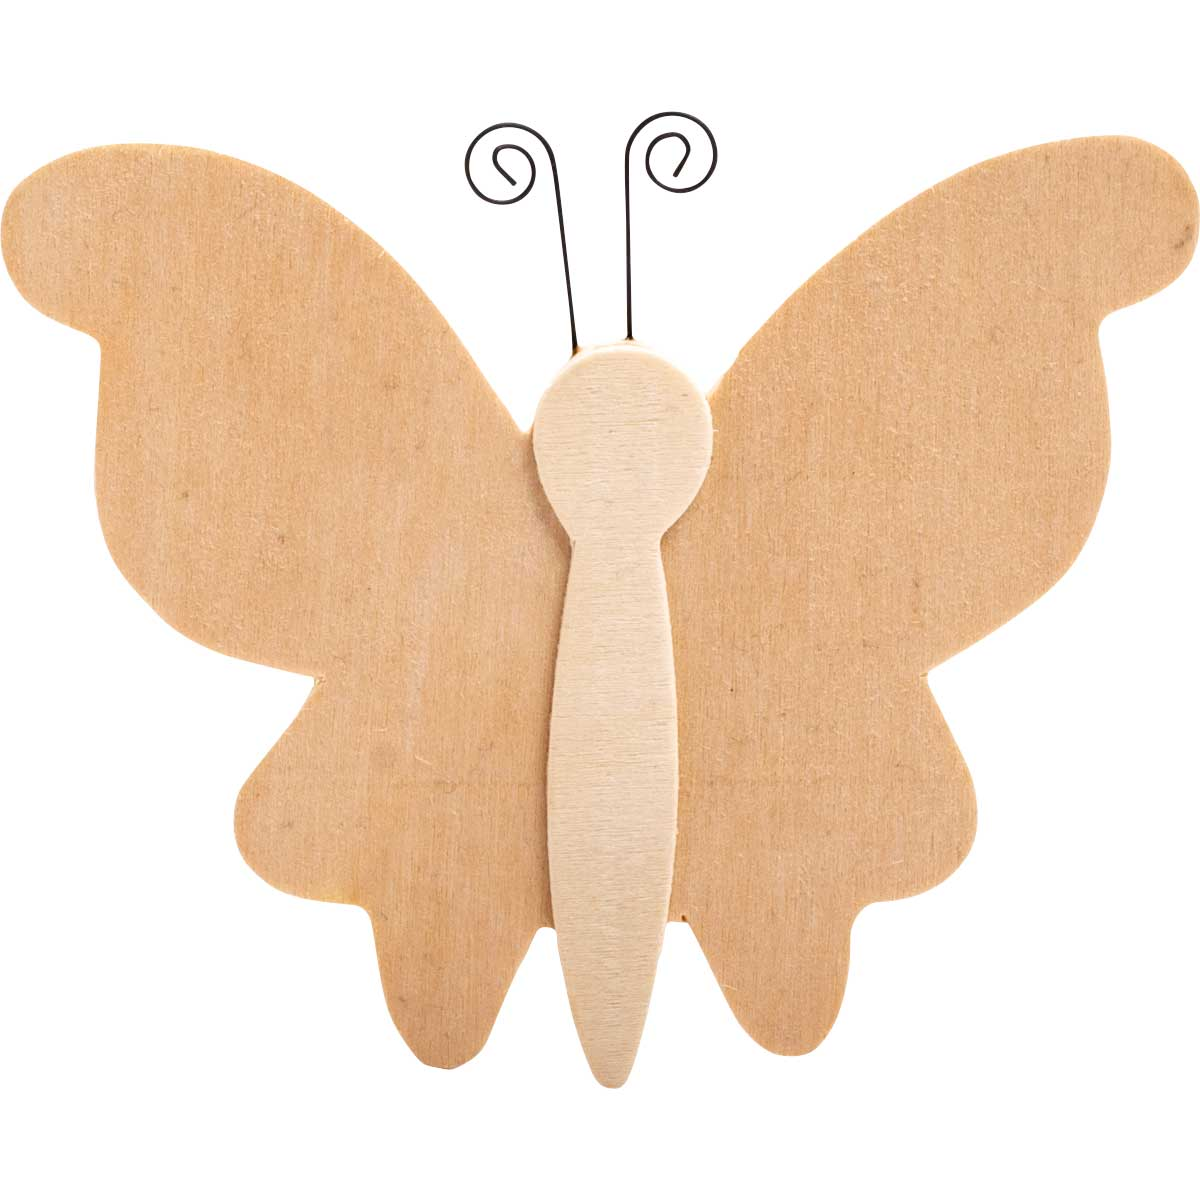 Plaid ® Wood Surfaces - Unpainted Layered Shapes - Butterfly